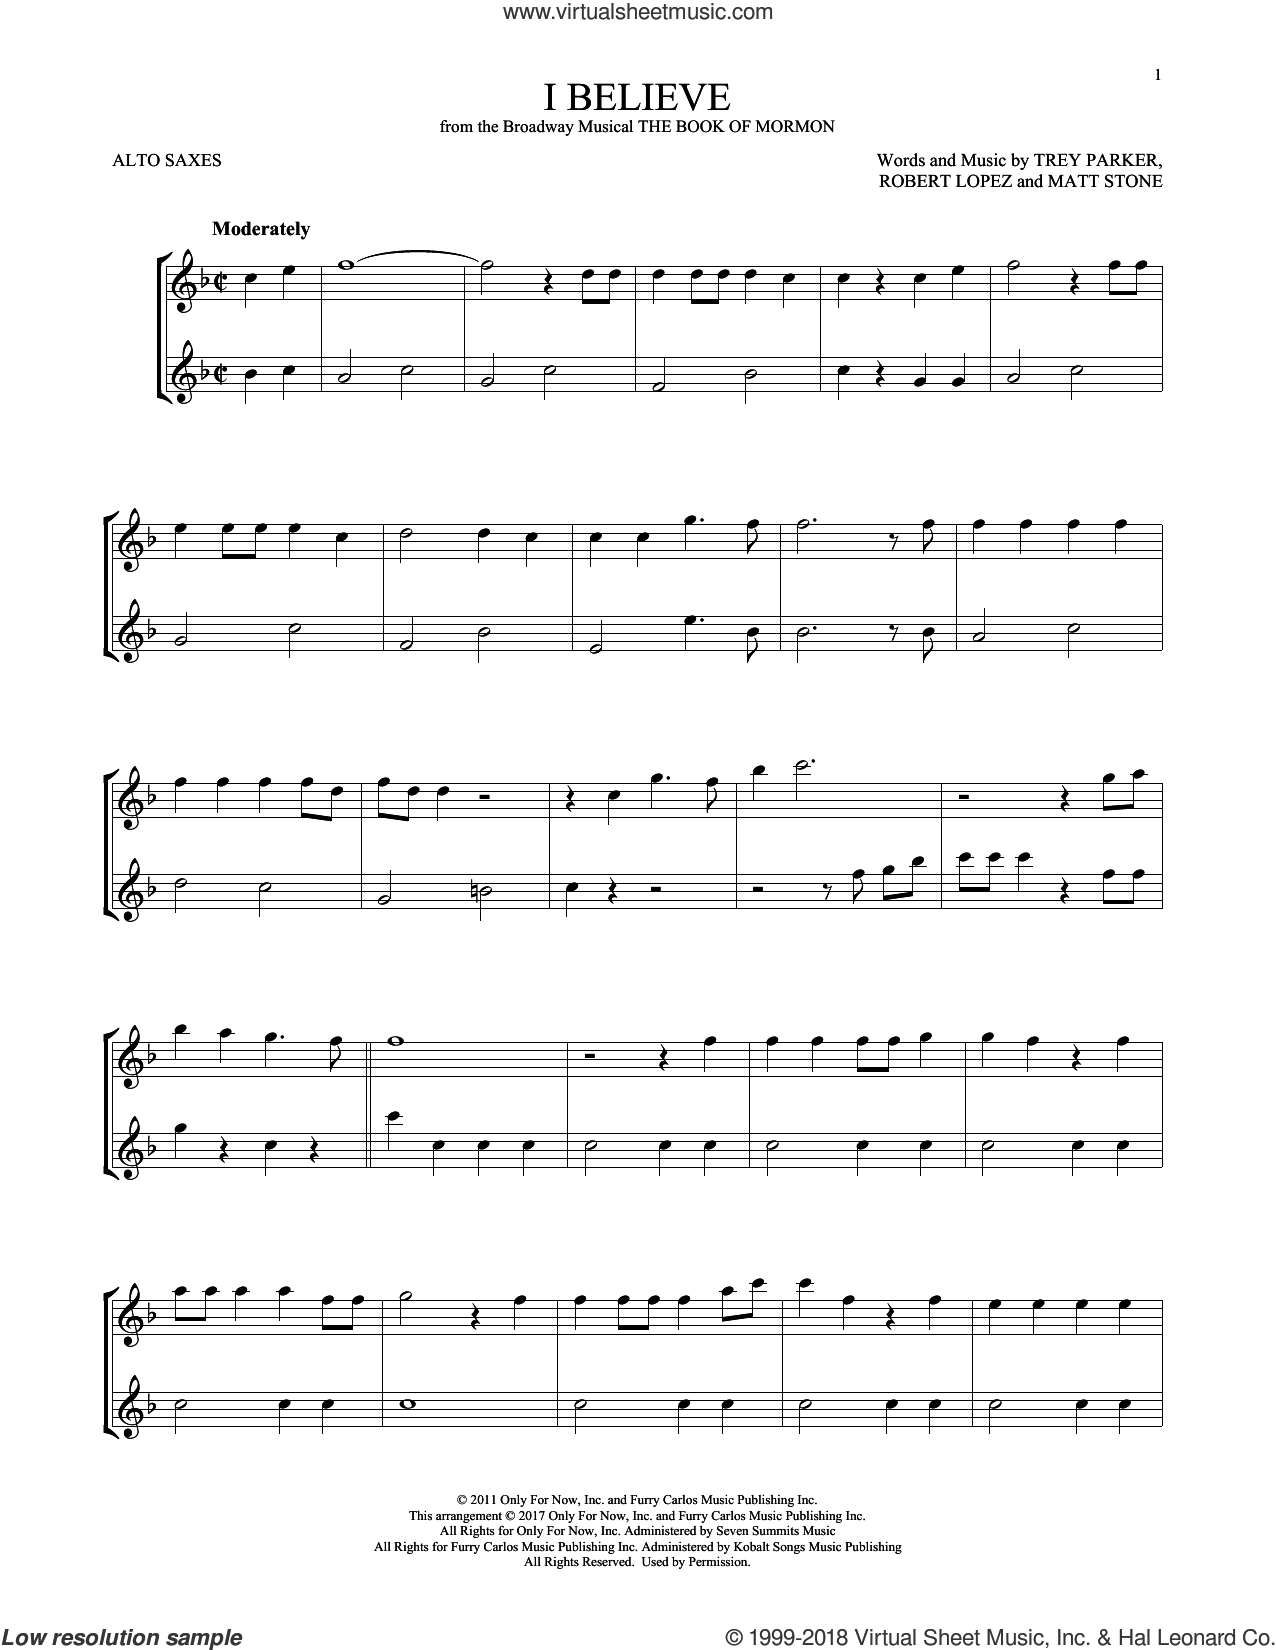 I Believe sheet music for two alto saxophones (duets) by Robert Lopez, Matt Stone, Trey Parker and Trey Parker, Matt Stone & Robert Lopez, intermediate skill level